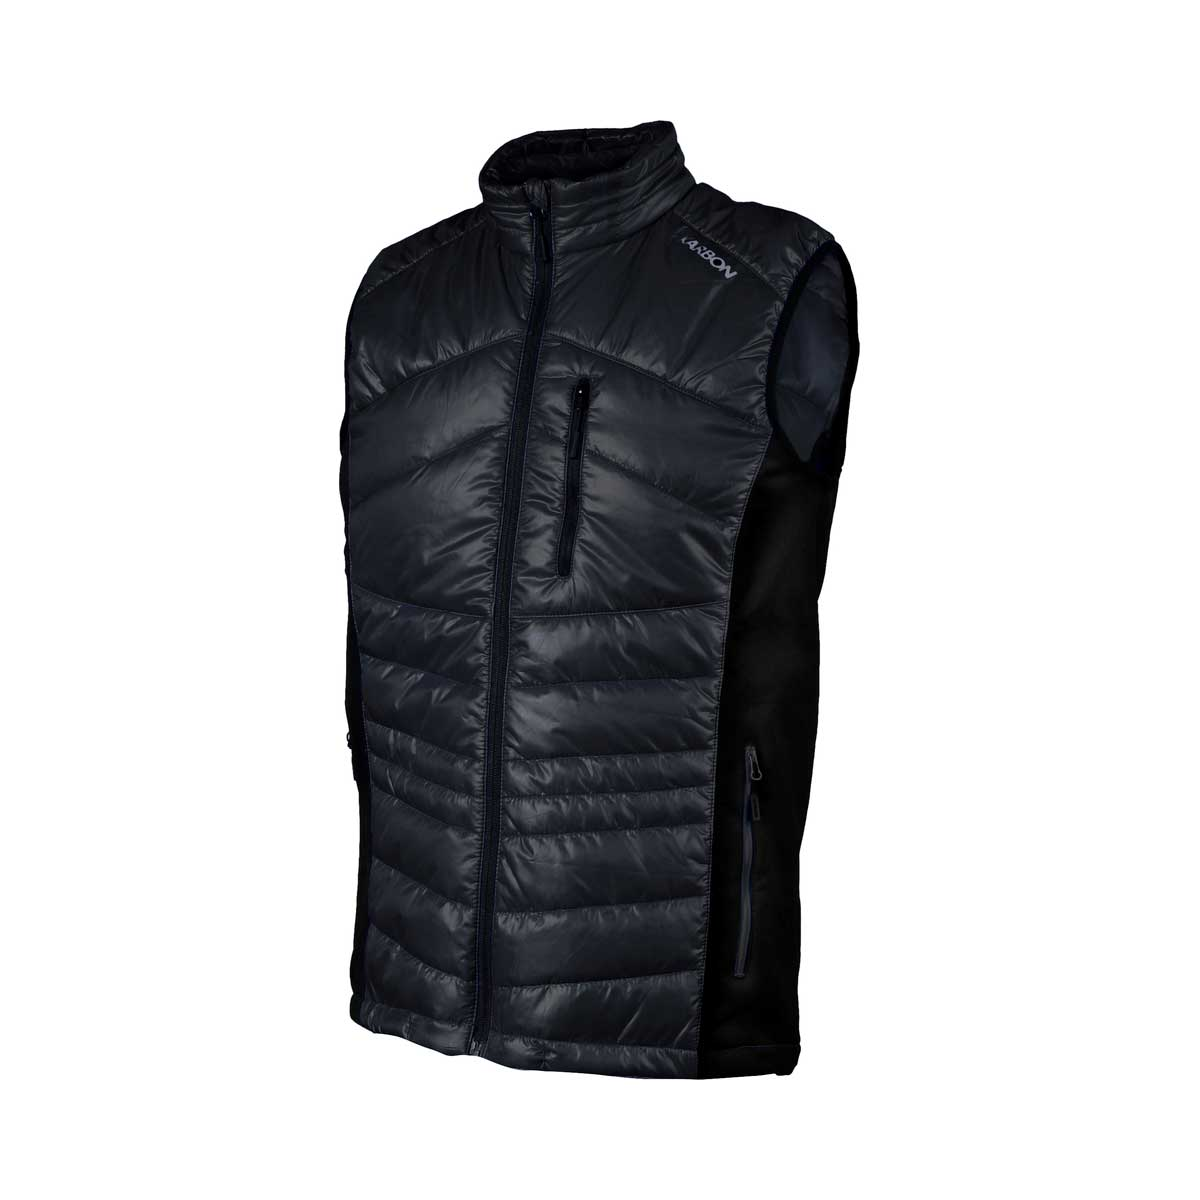 Karbon Men's Spartan Vest in Black